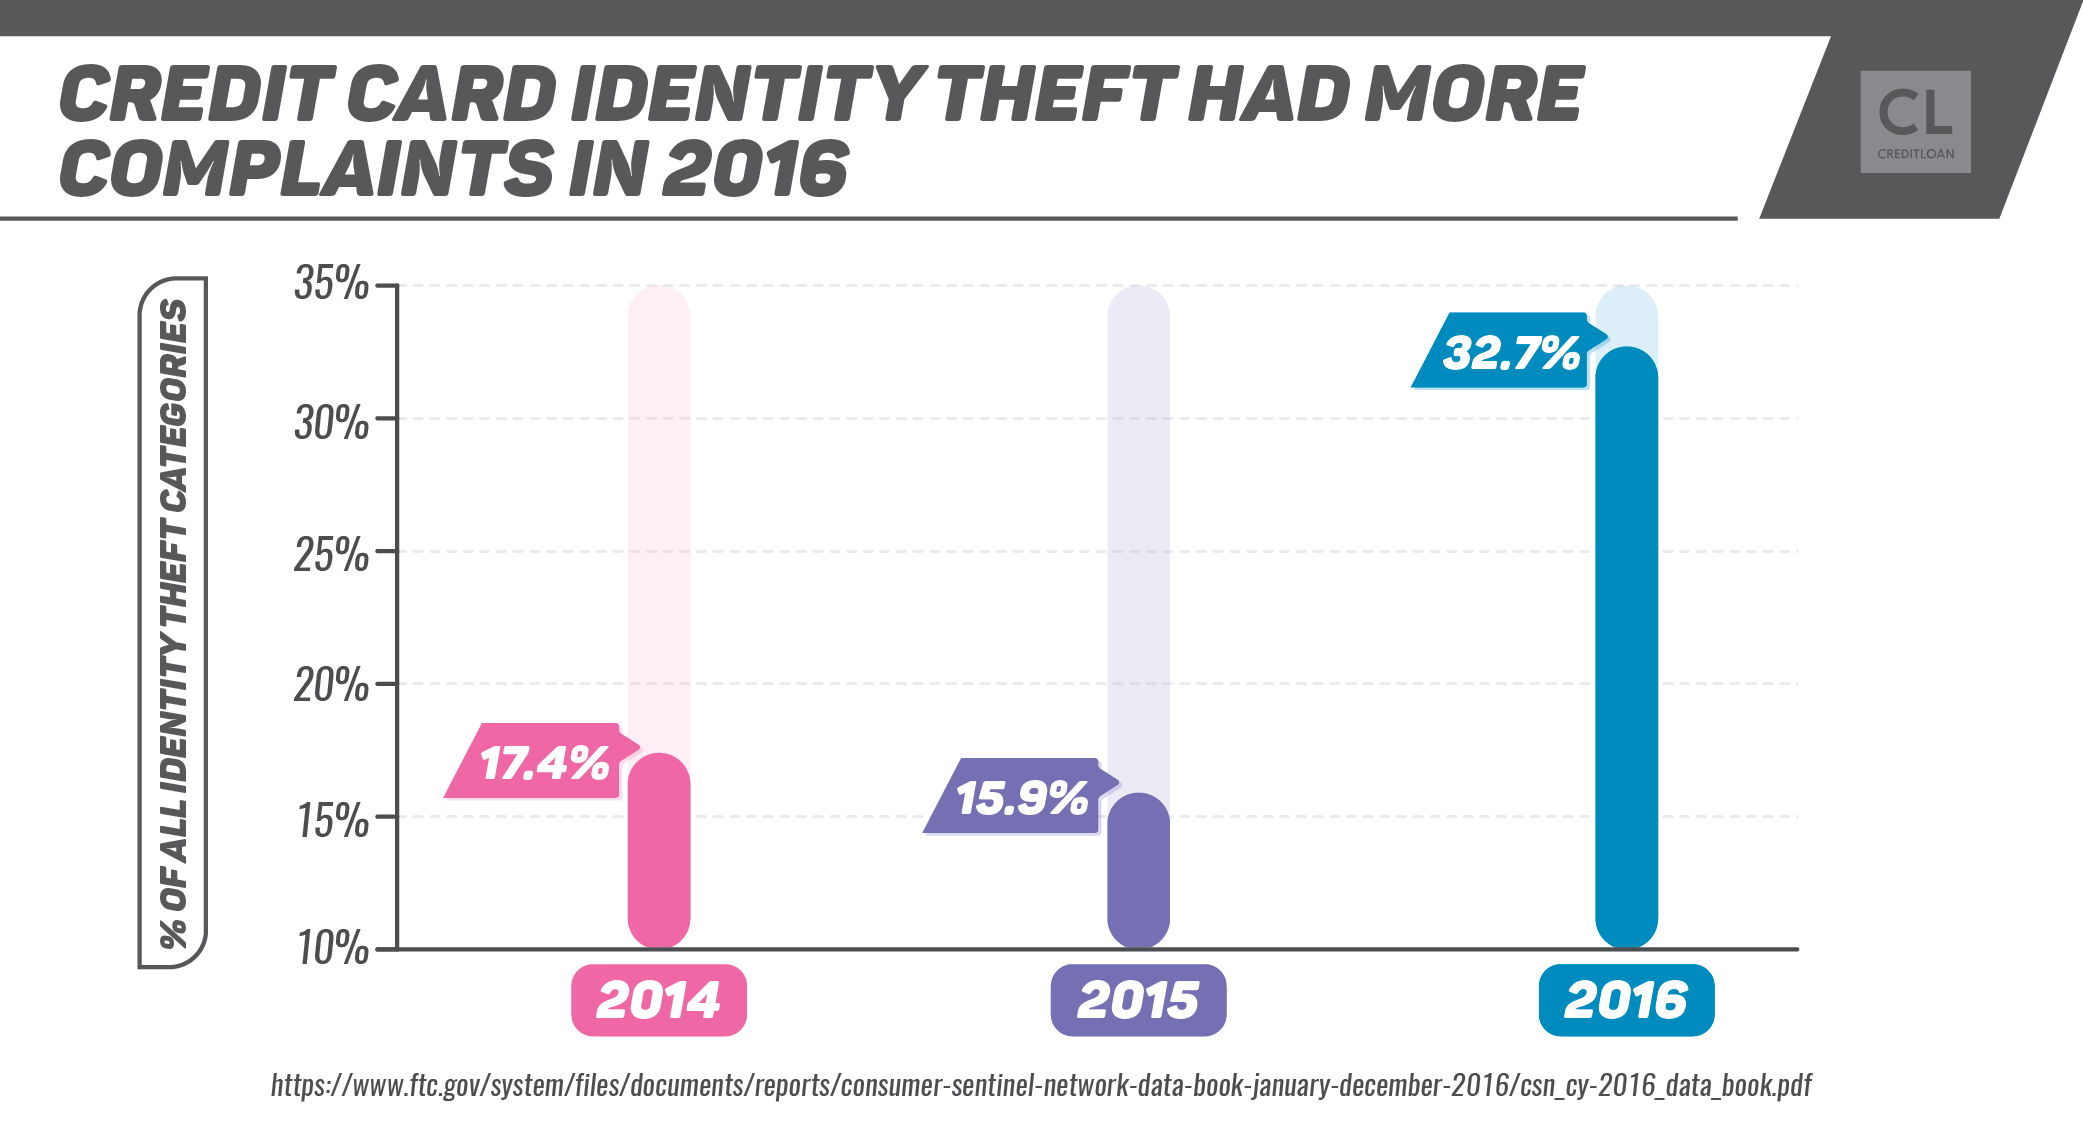 Credit Card Identity Theft 2014-2016